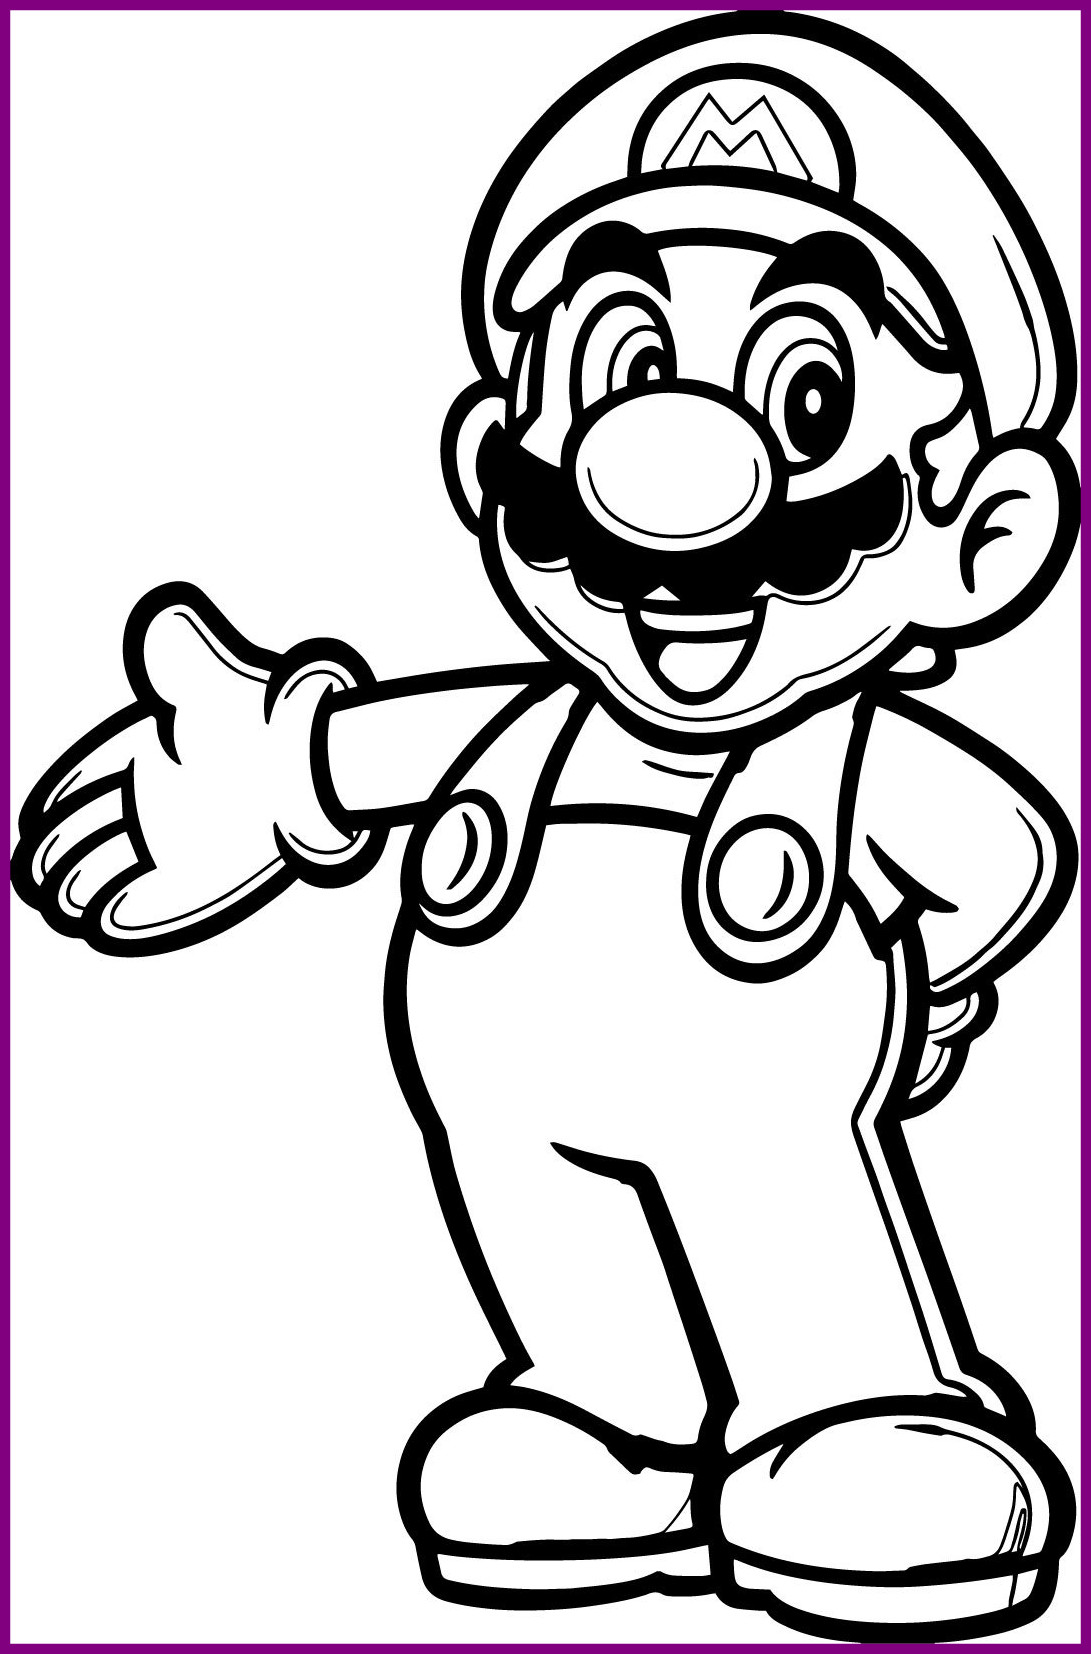 1091x1654 Stunning Super Mario Coloring Pages Phototoon Me Picture For Kart